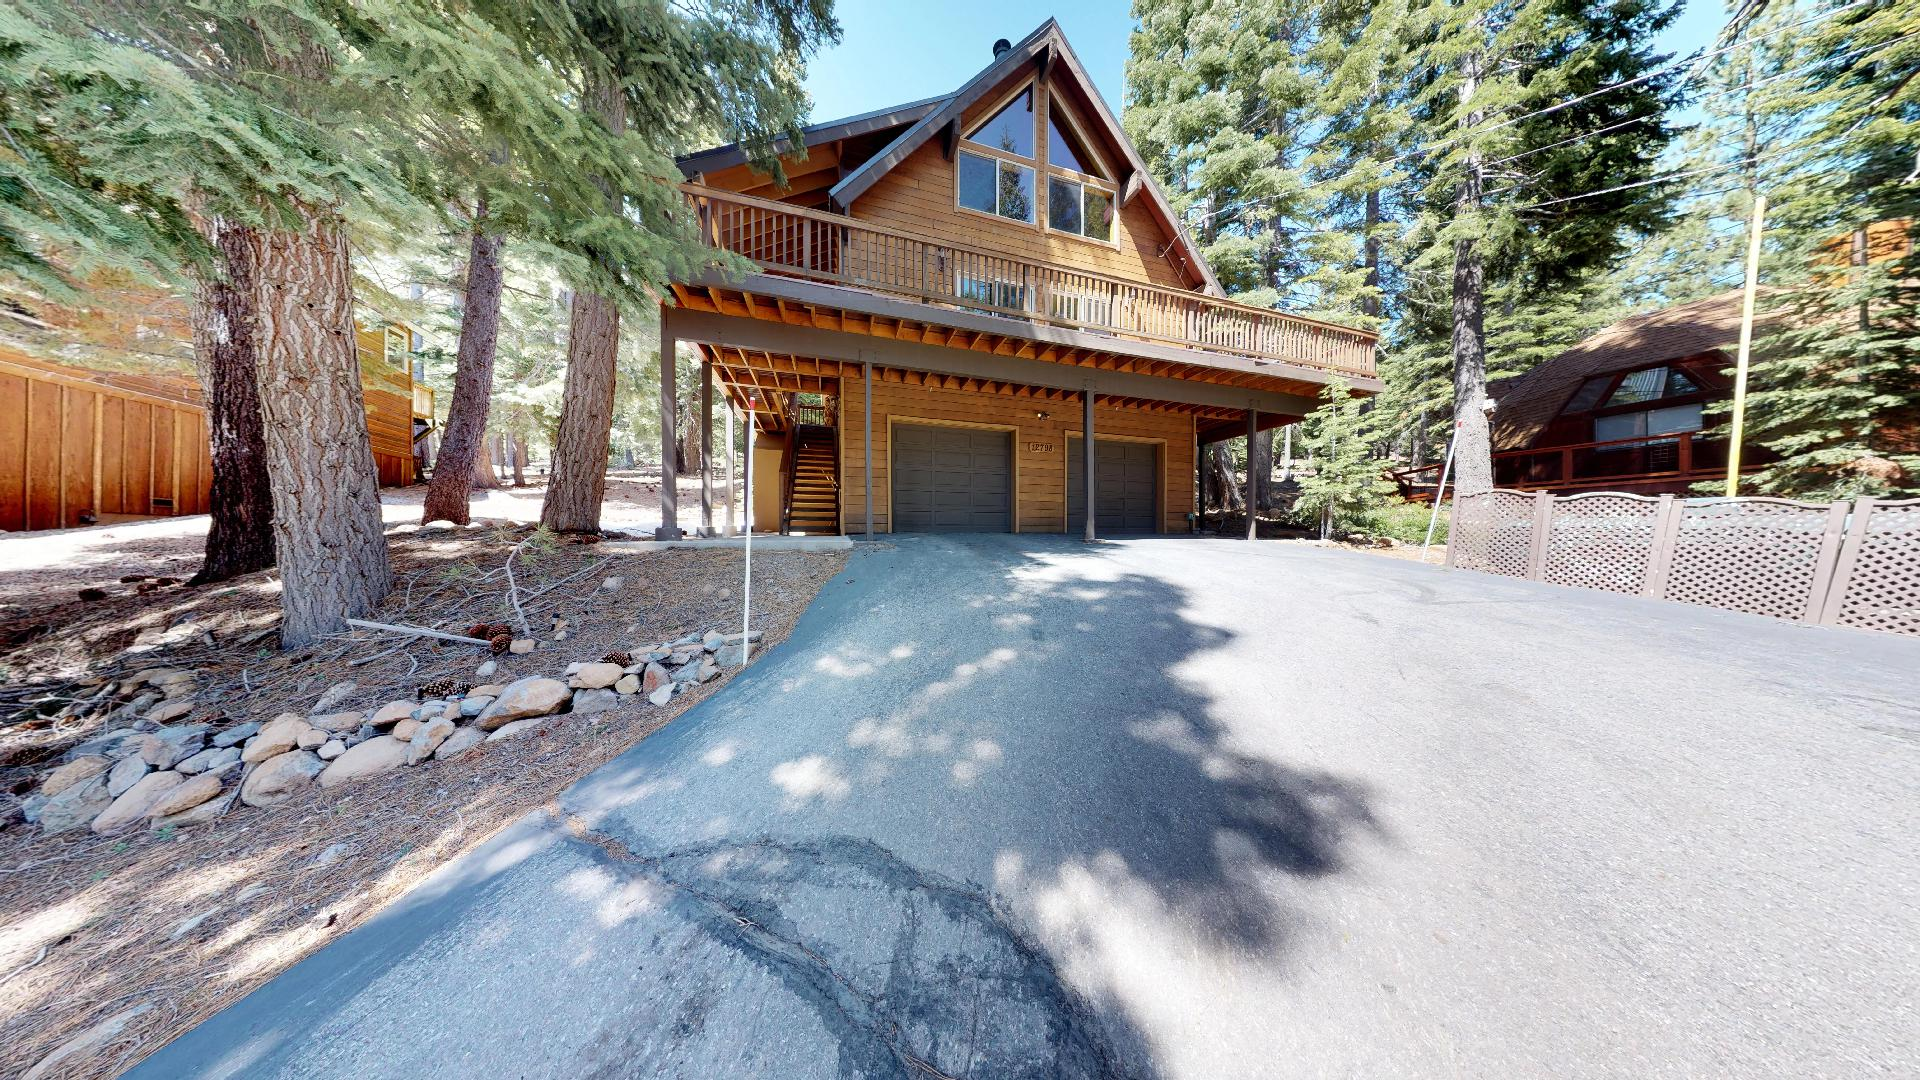 Large Driveway and Garage Space at Falcon Point Vacation Cabin